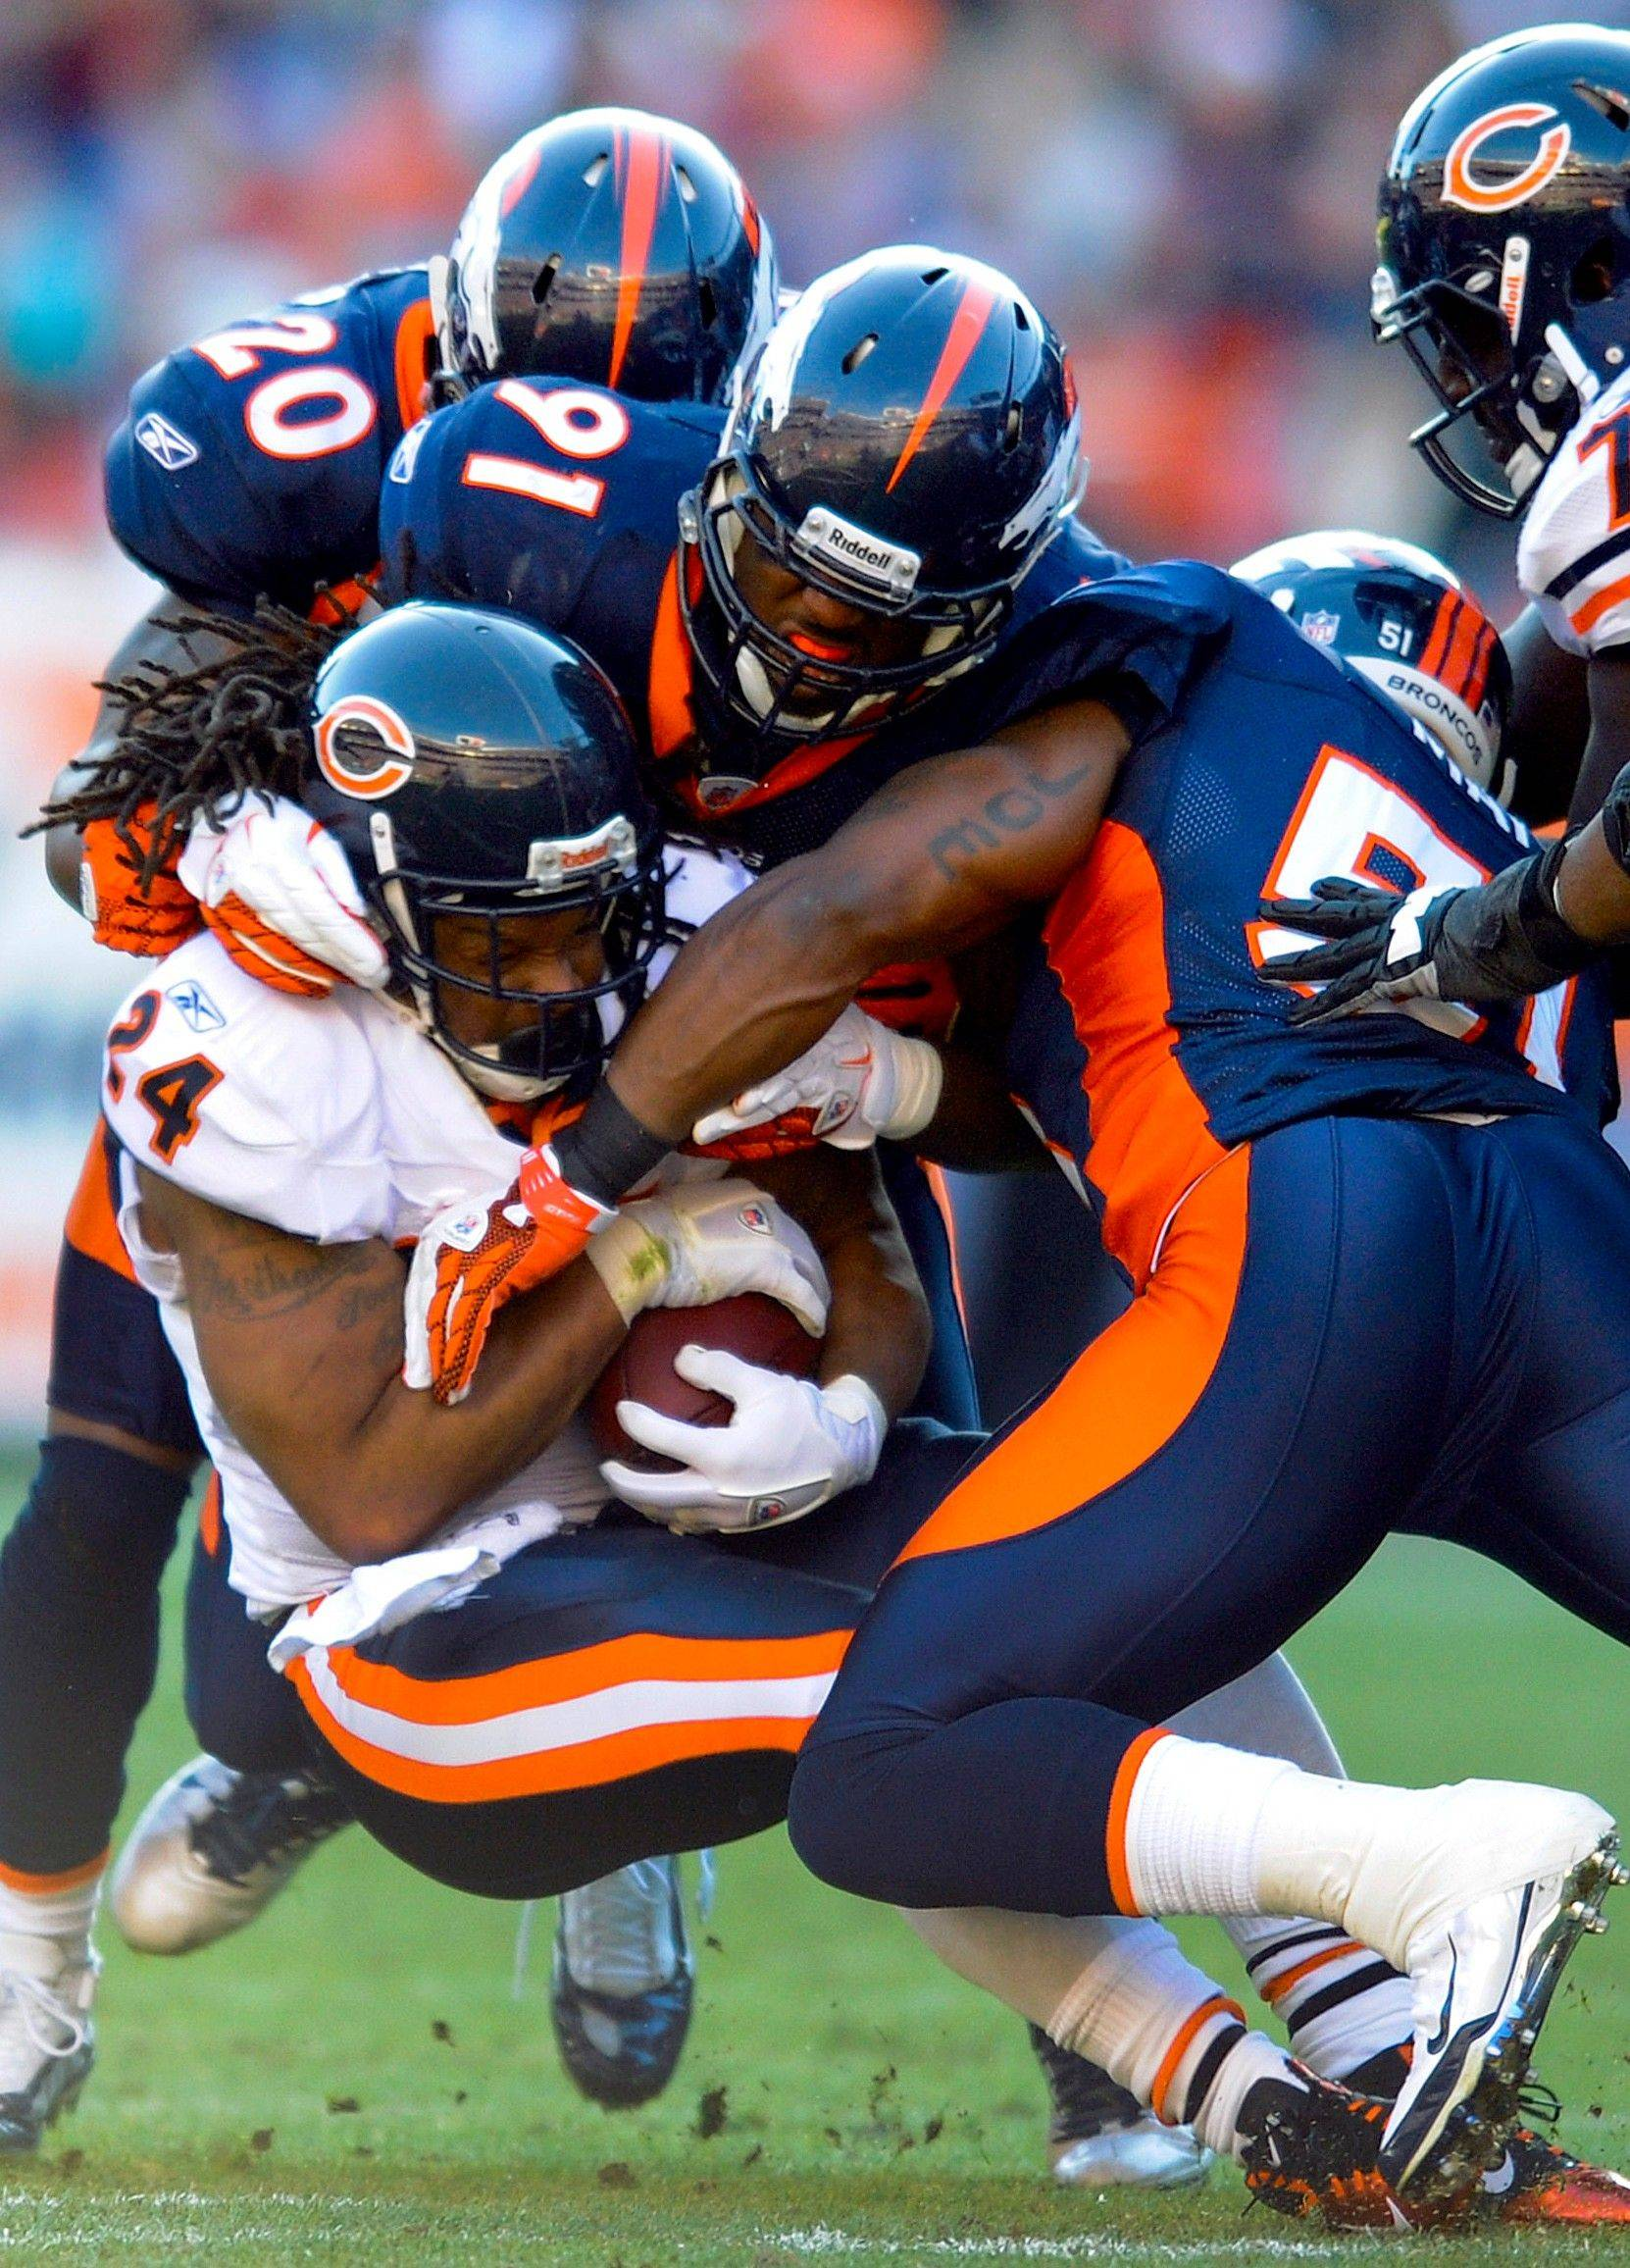 Chicago Bears running back Marion Barber (24) is tackled by Denver Broncos strong safety Brian Dawkins (20), defensive end Robert Ayers (91) and middle linebacker Joe Mays (51) in the first quarter.